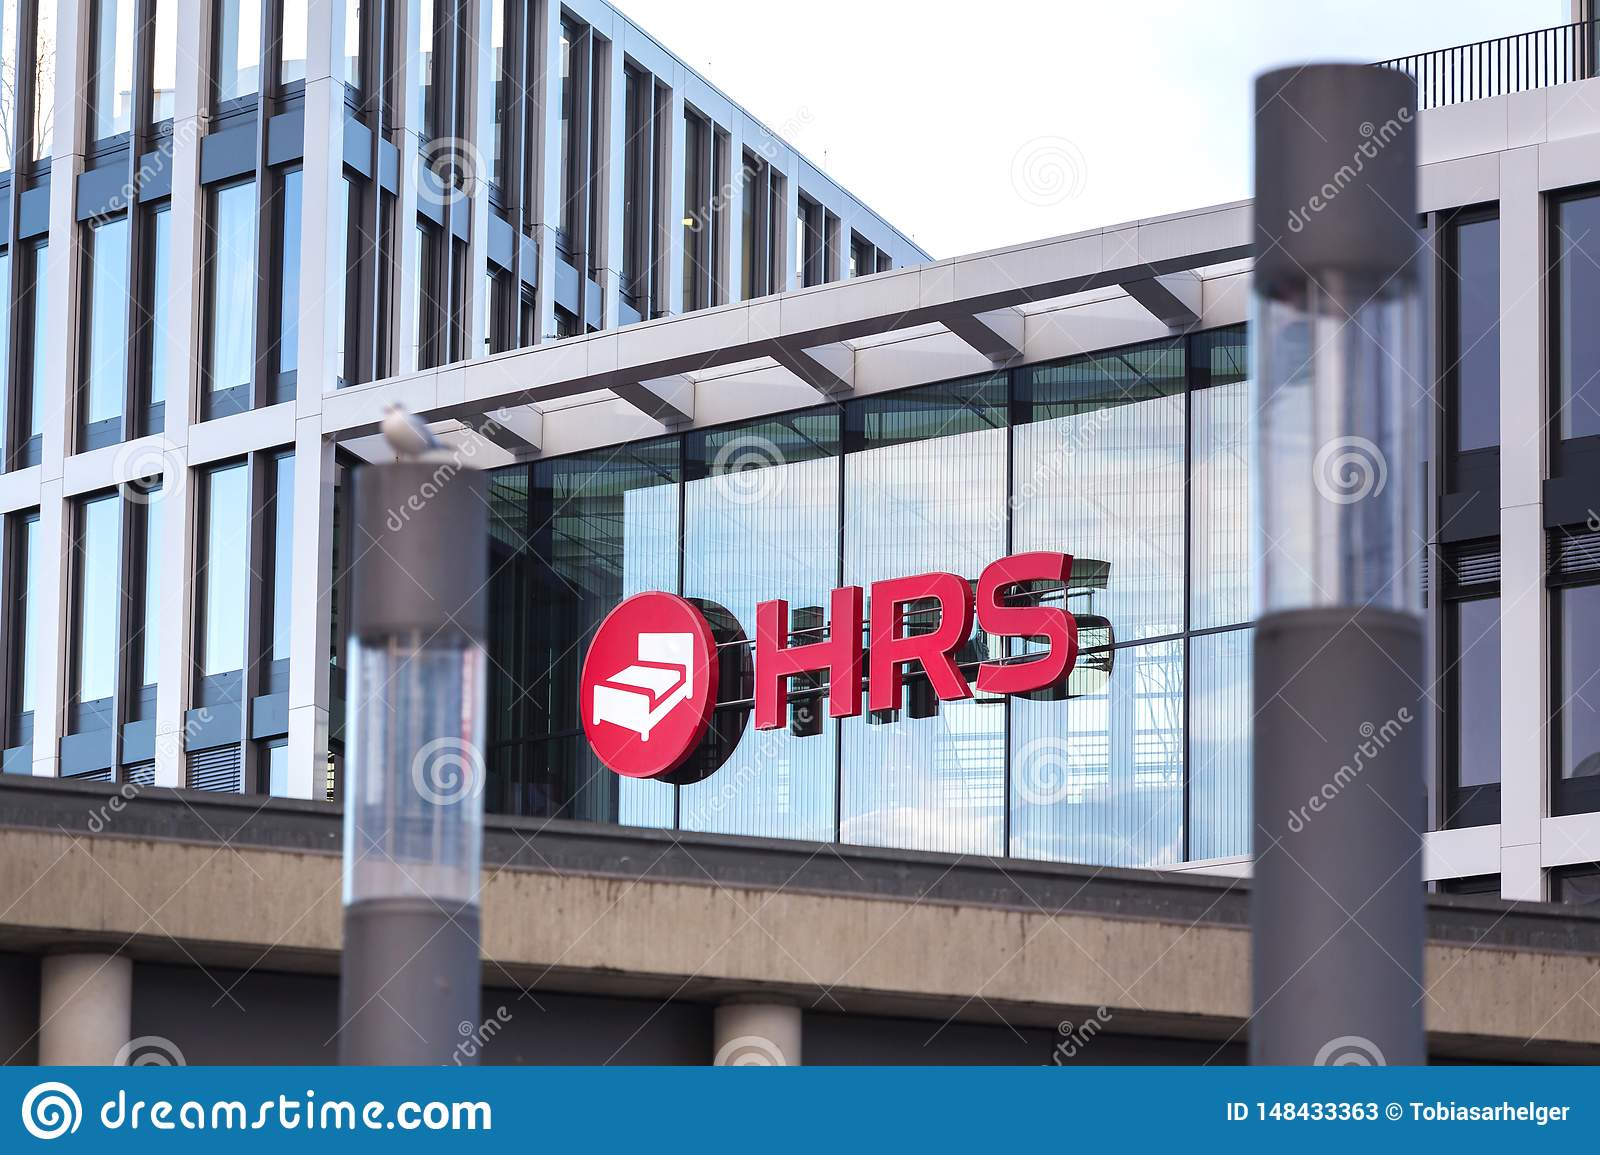 Hrs sign in cologne germany